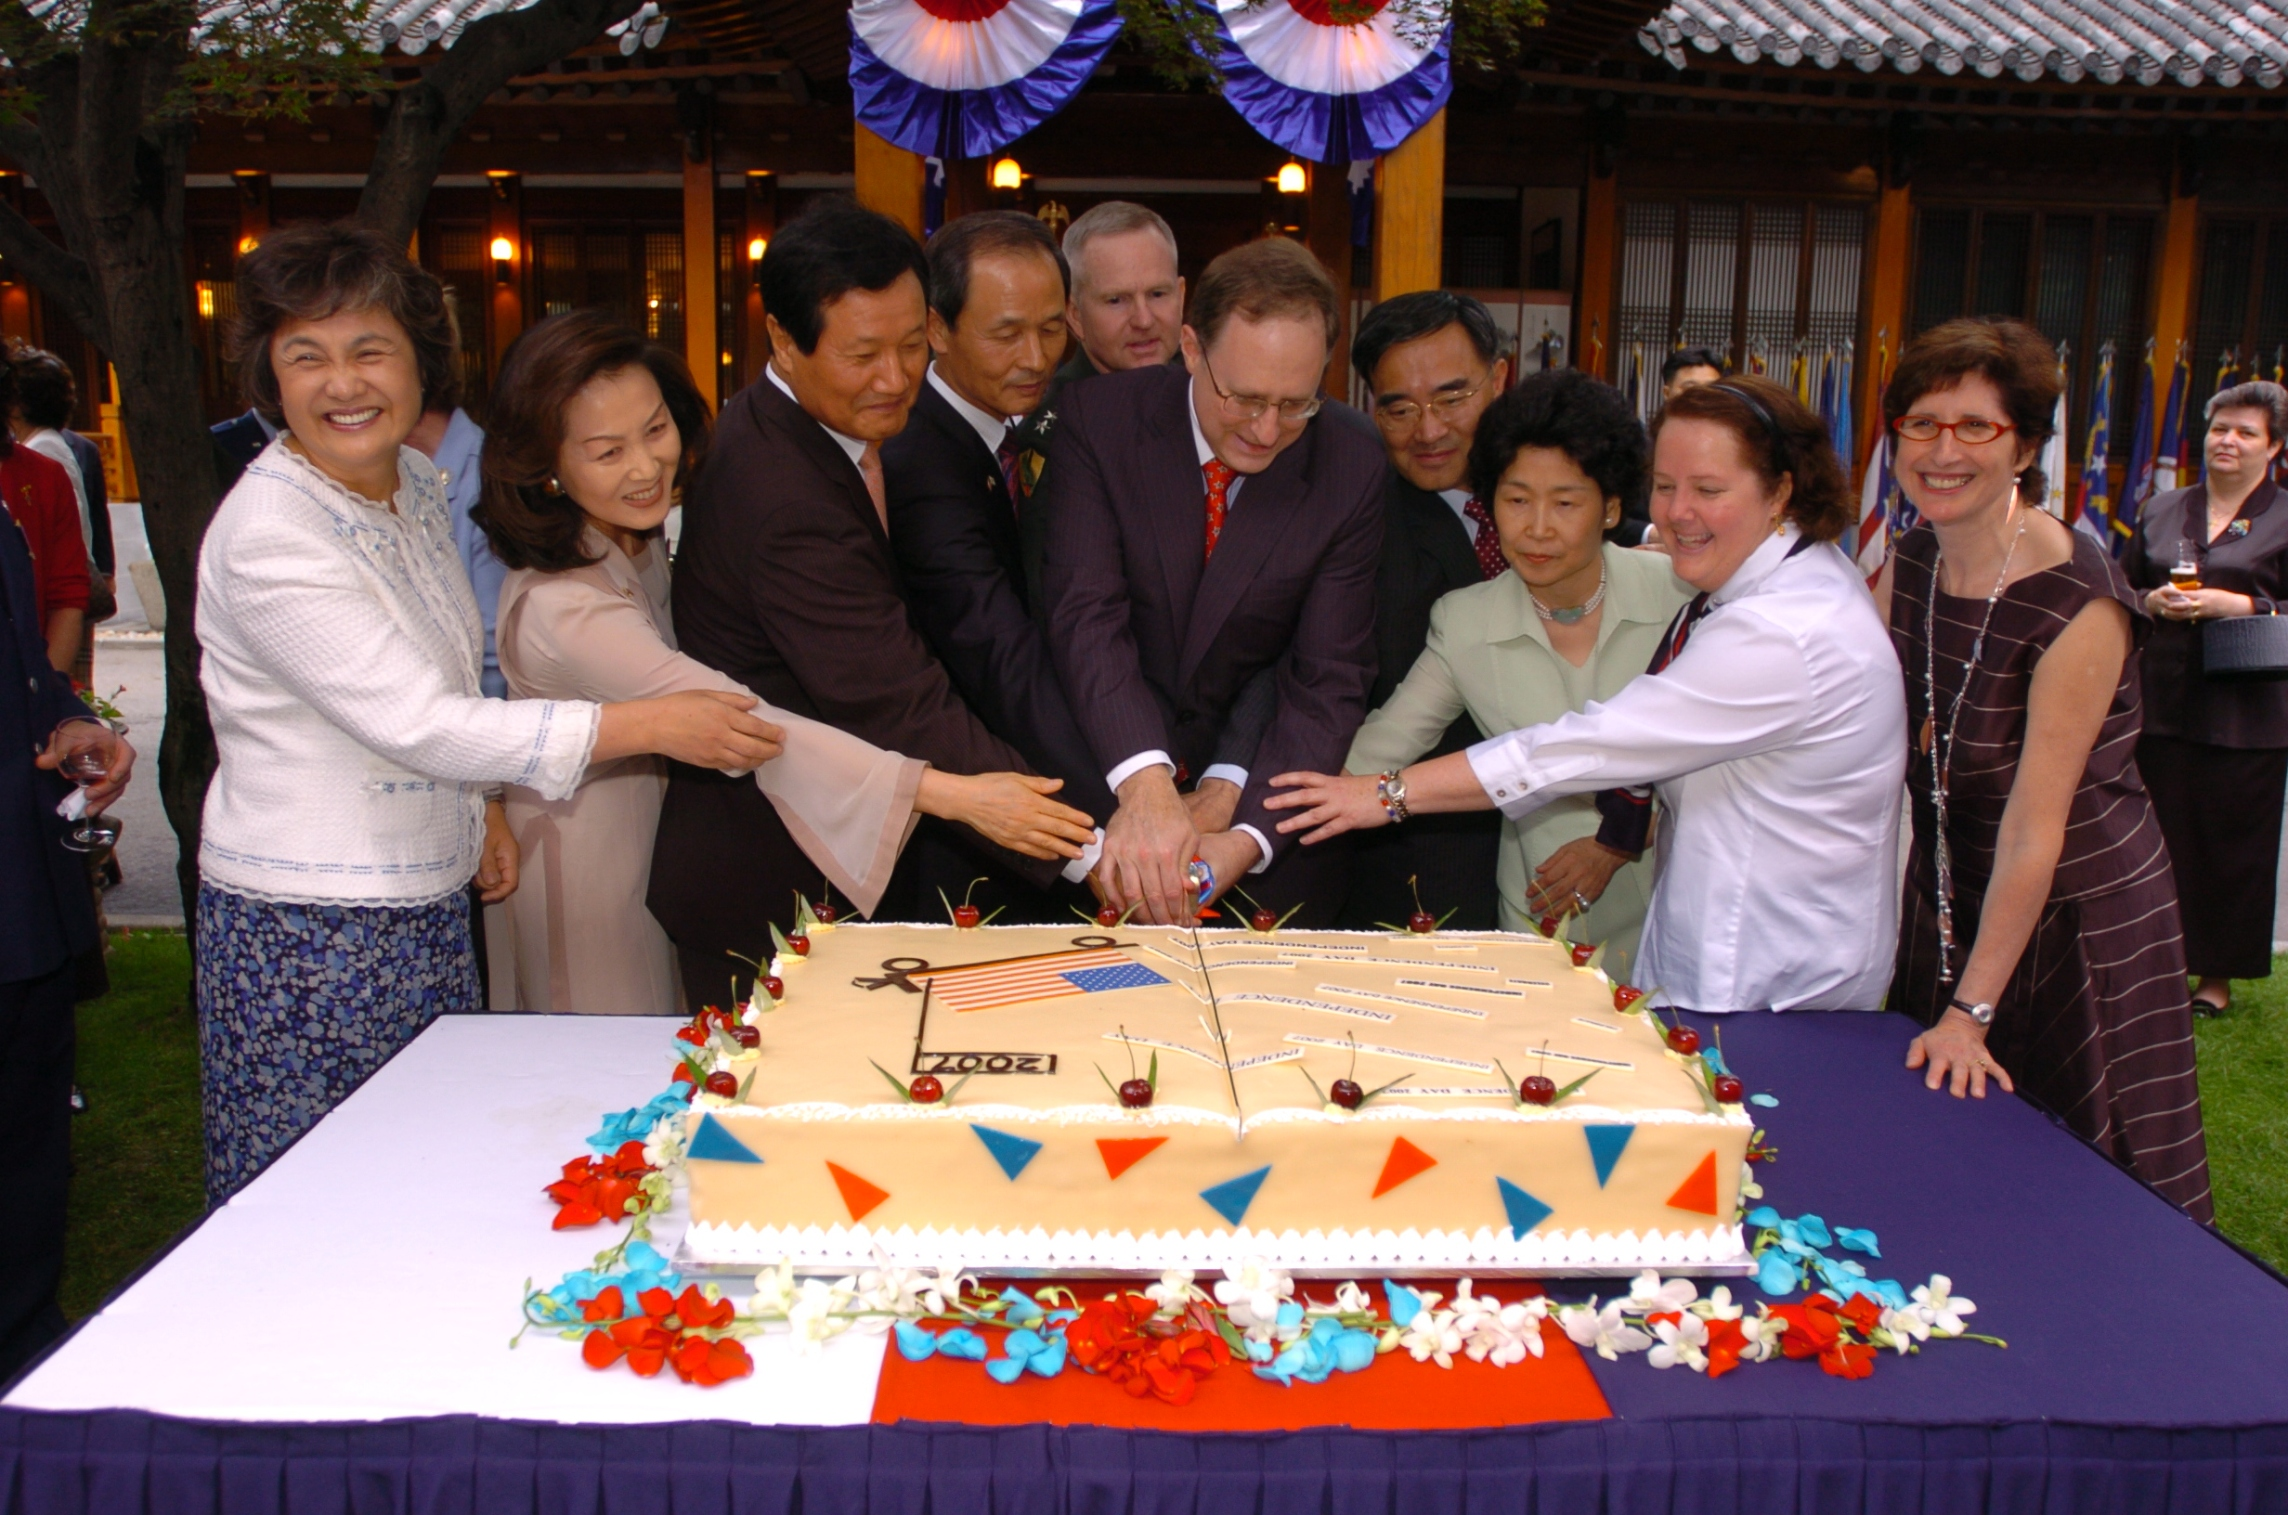 Cake Cutting at 2007 Embassy Independence Day celebration